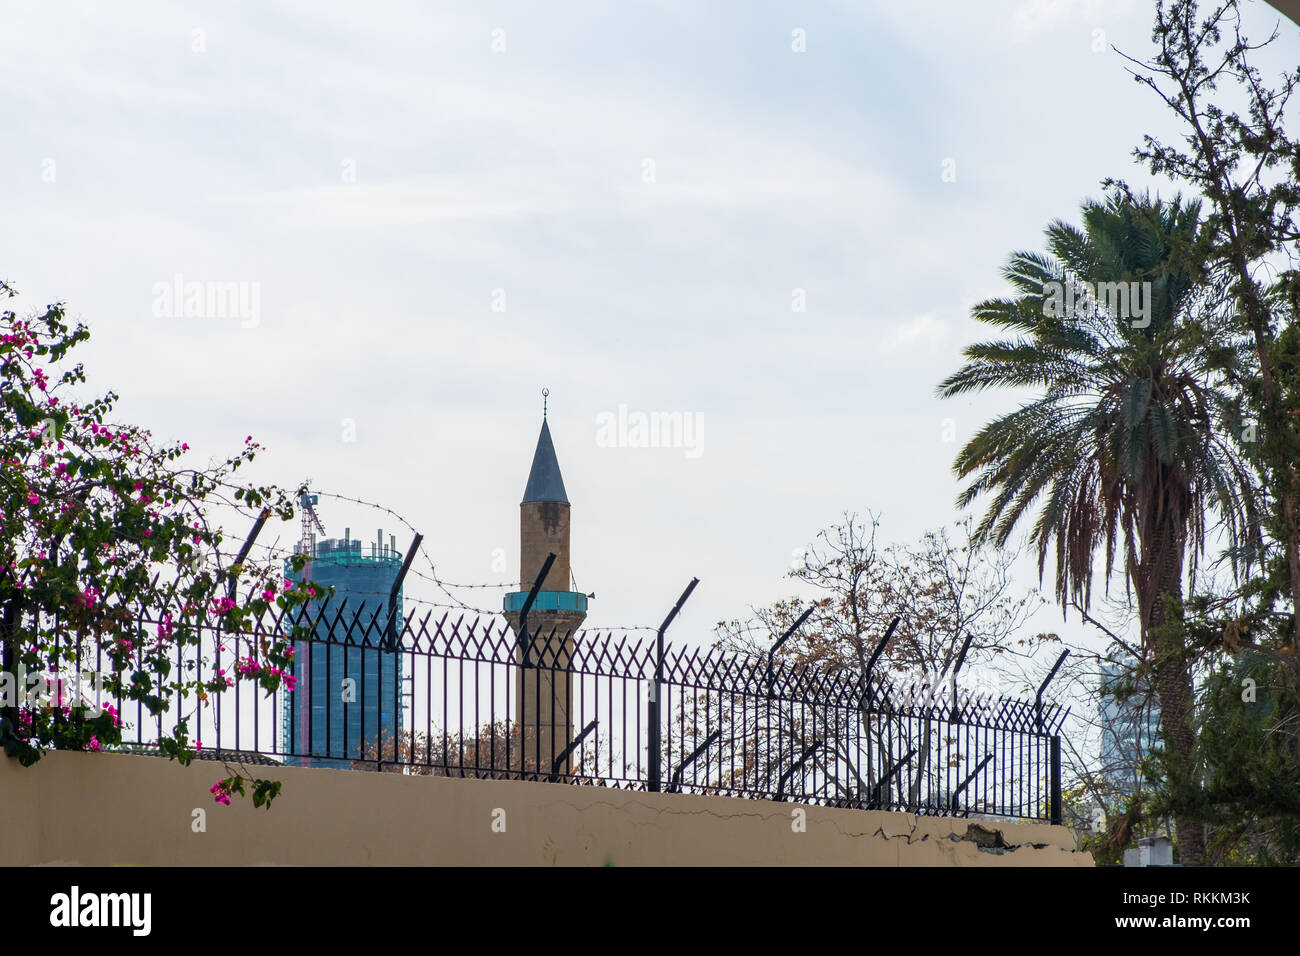 Contrasting view of a palm tree, a mosque and a sky scraper viewed from the historic centre of Nicosia, Cyprus - Stock Image